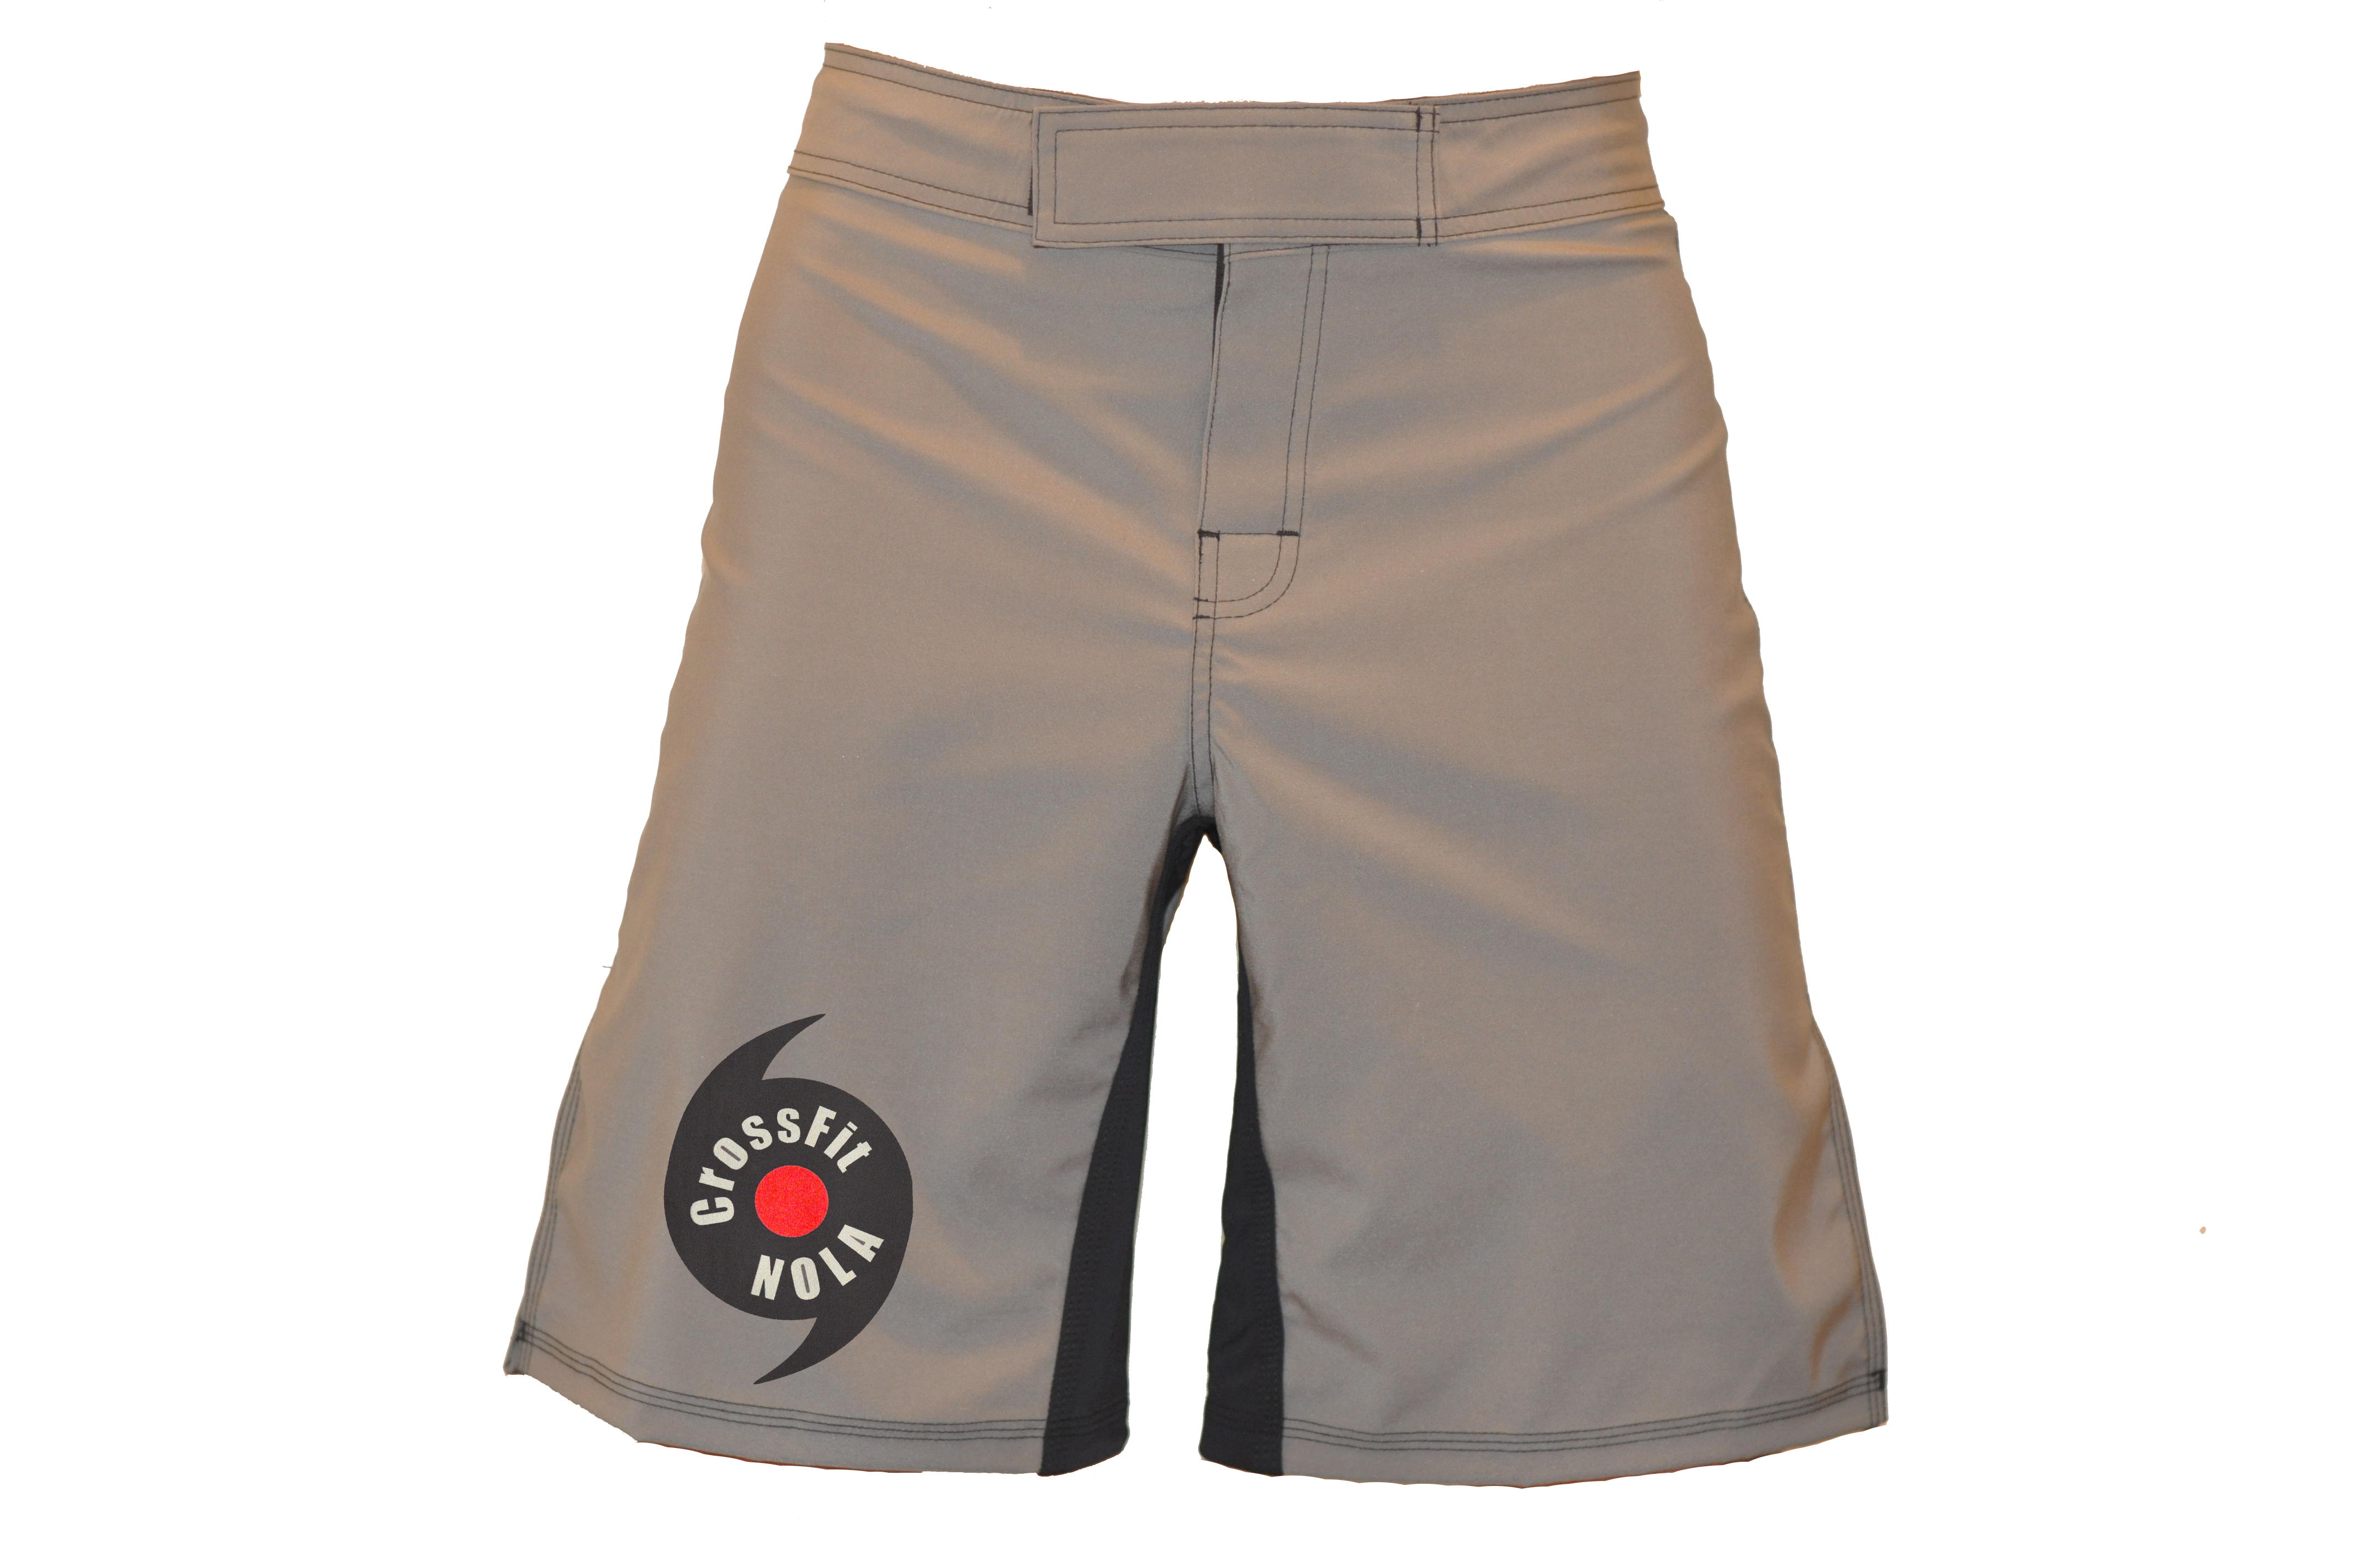 Crossfit_20nola_20grey_20shorts_20updated._original